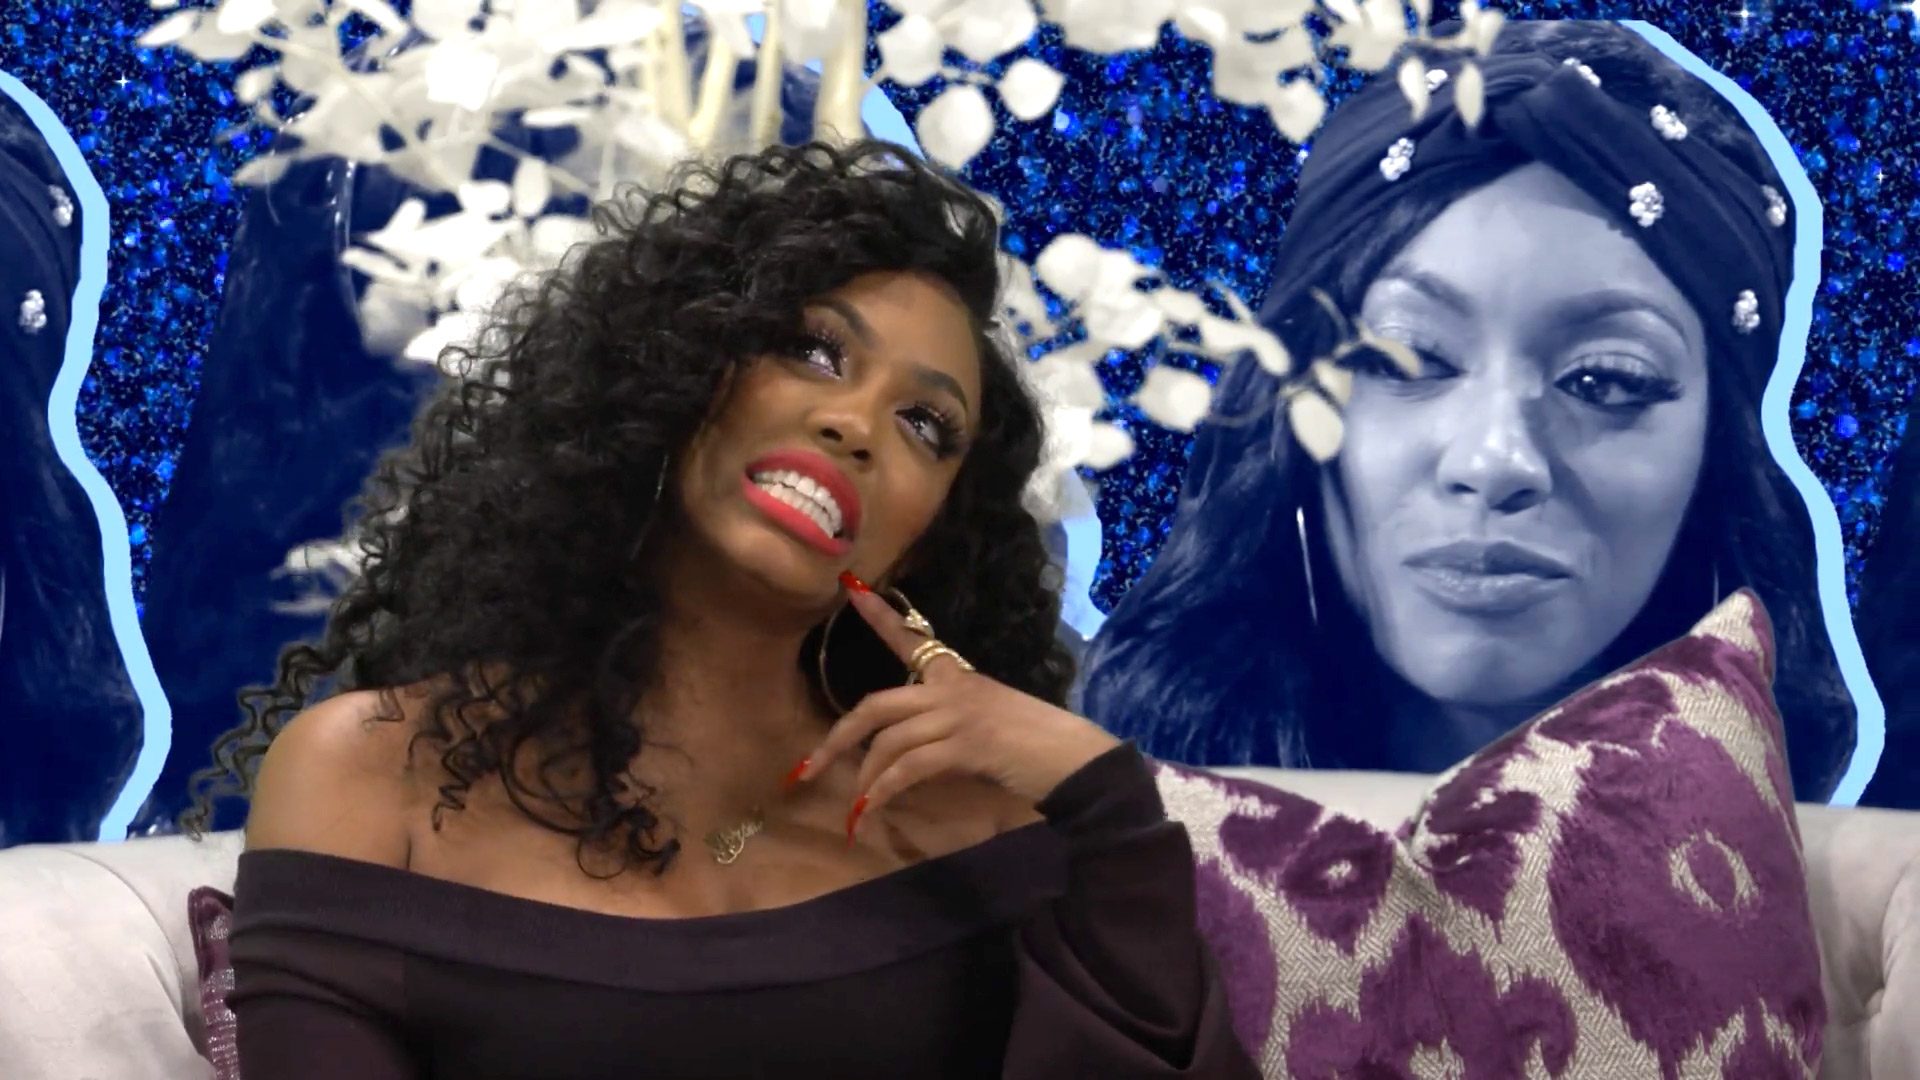 Porsha Williams Shows Off Her Hourglass Figure In An Animal Print Dress